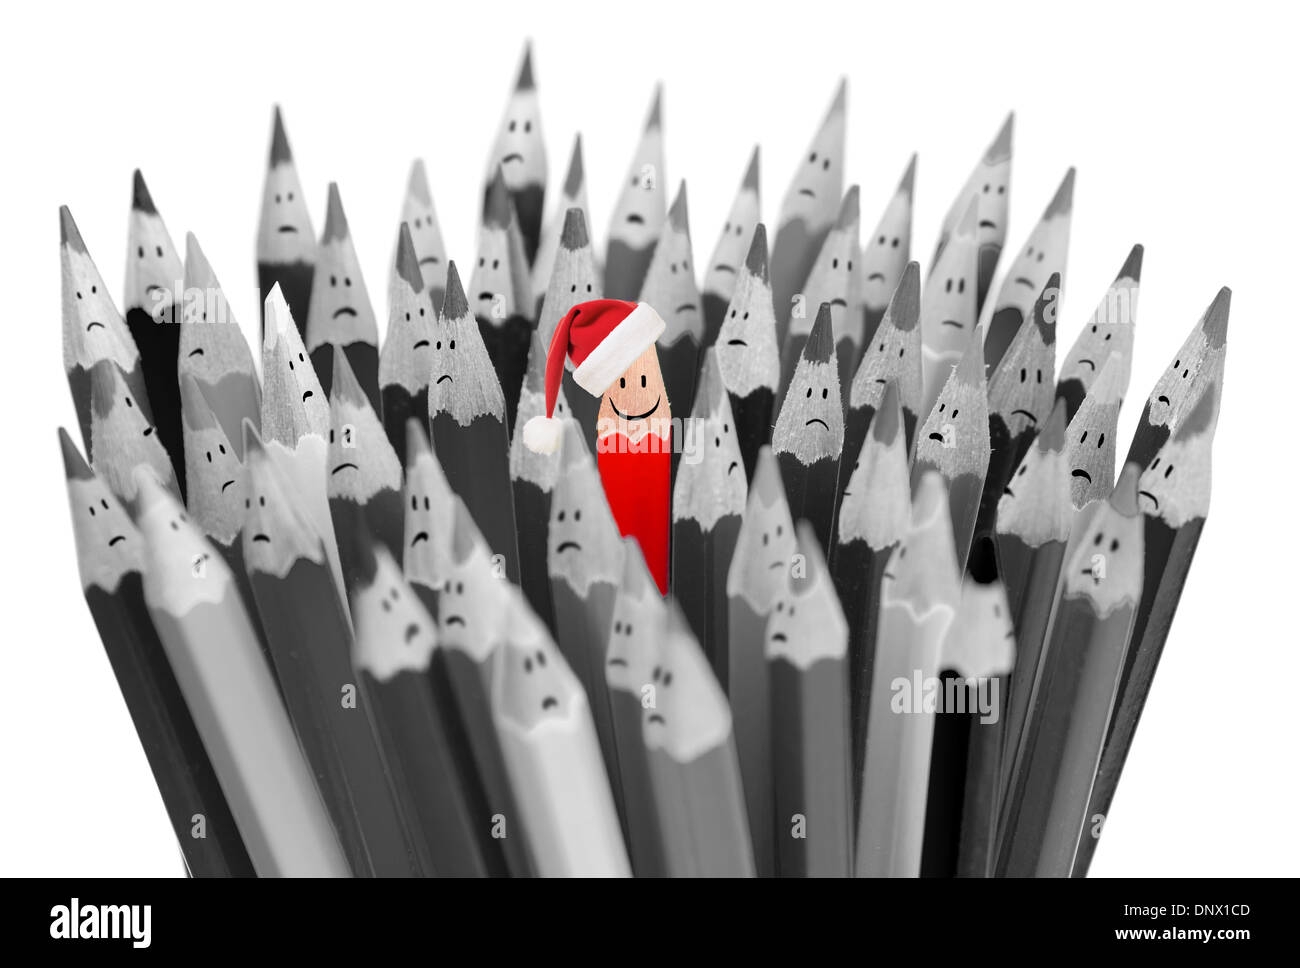 pencil with smile in Santa's Christmas hat among sad gray pencils - Stock Image